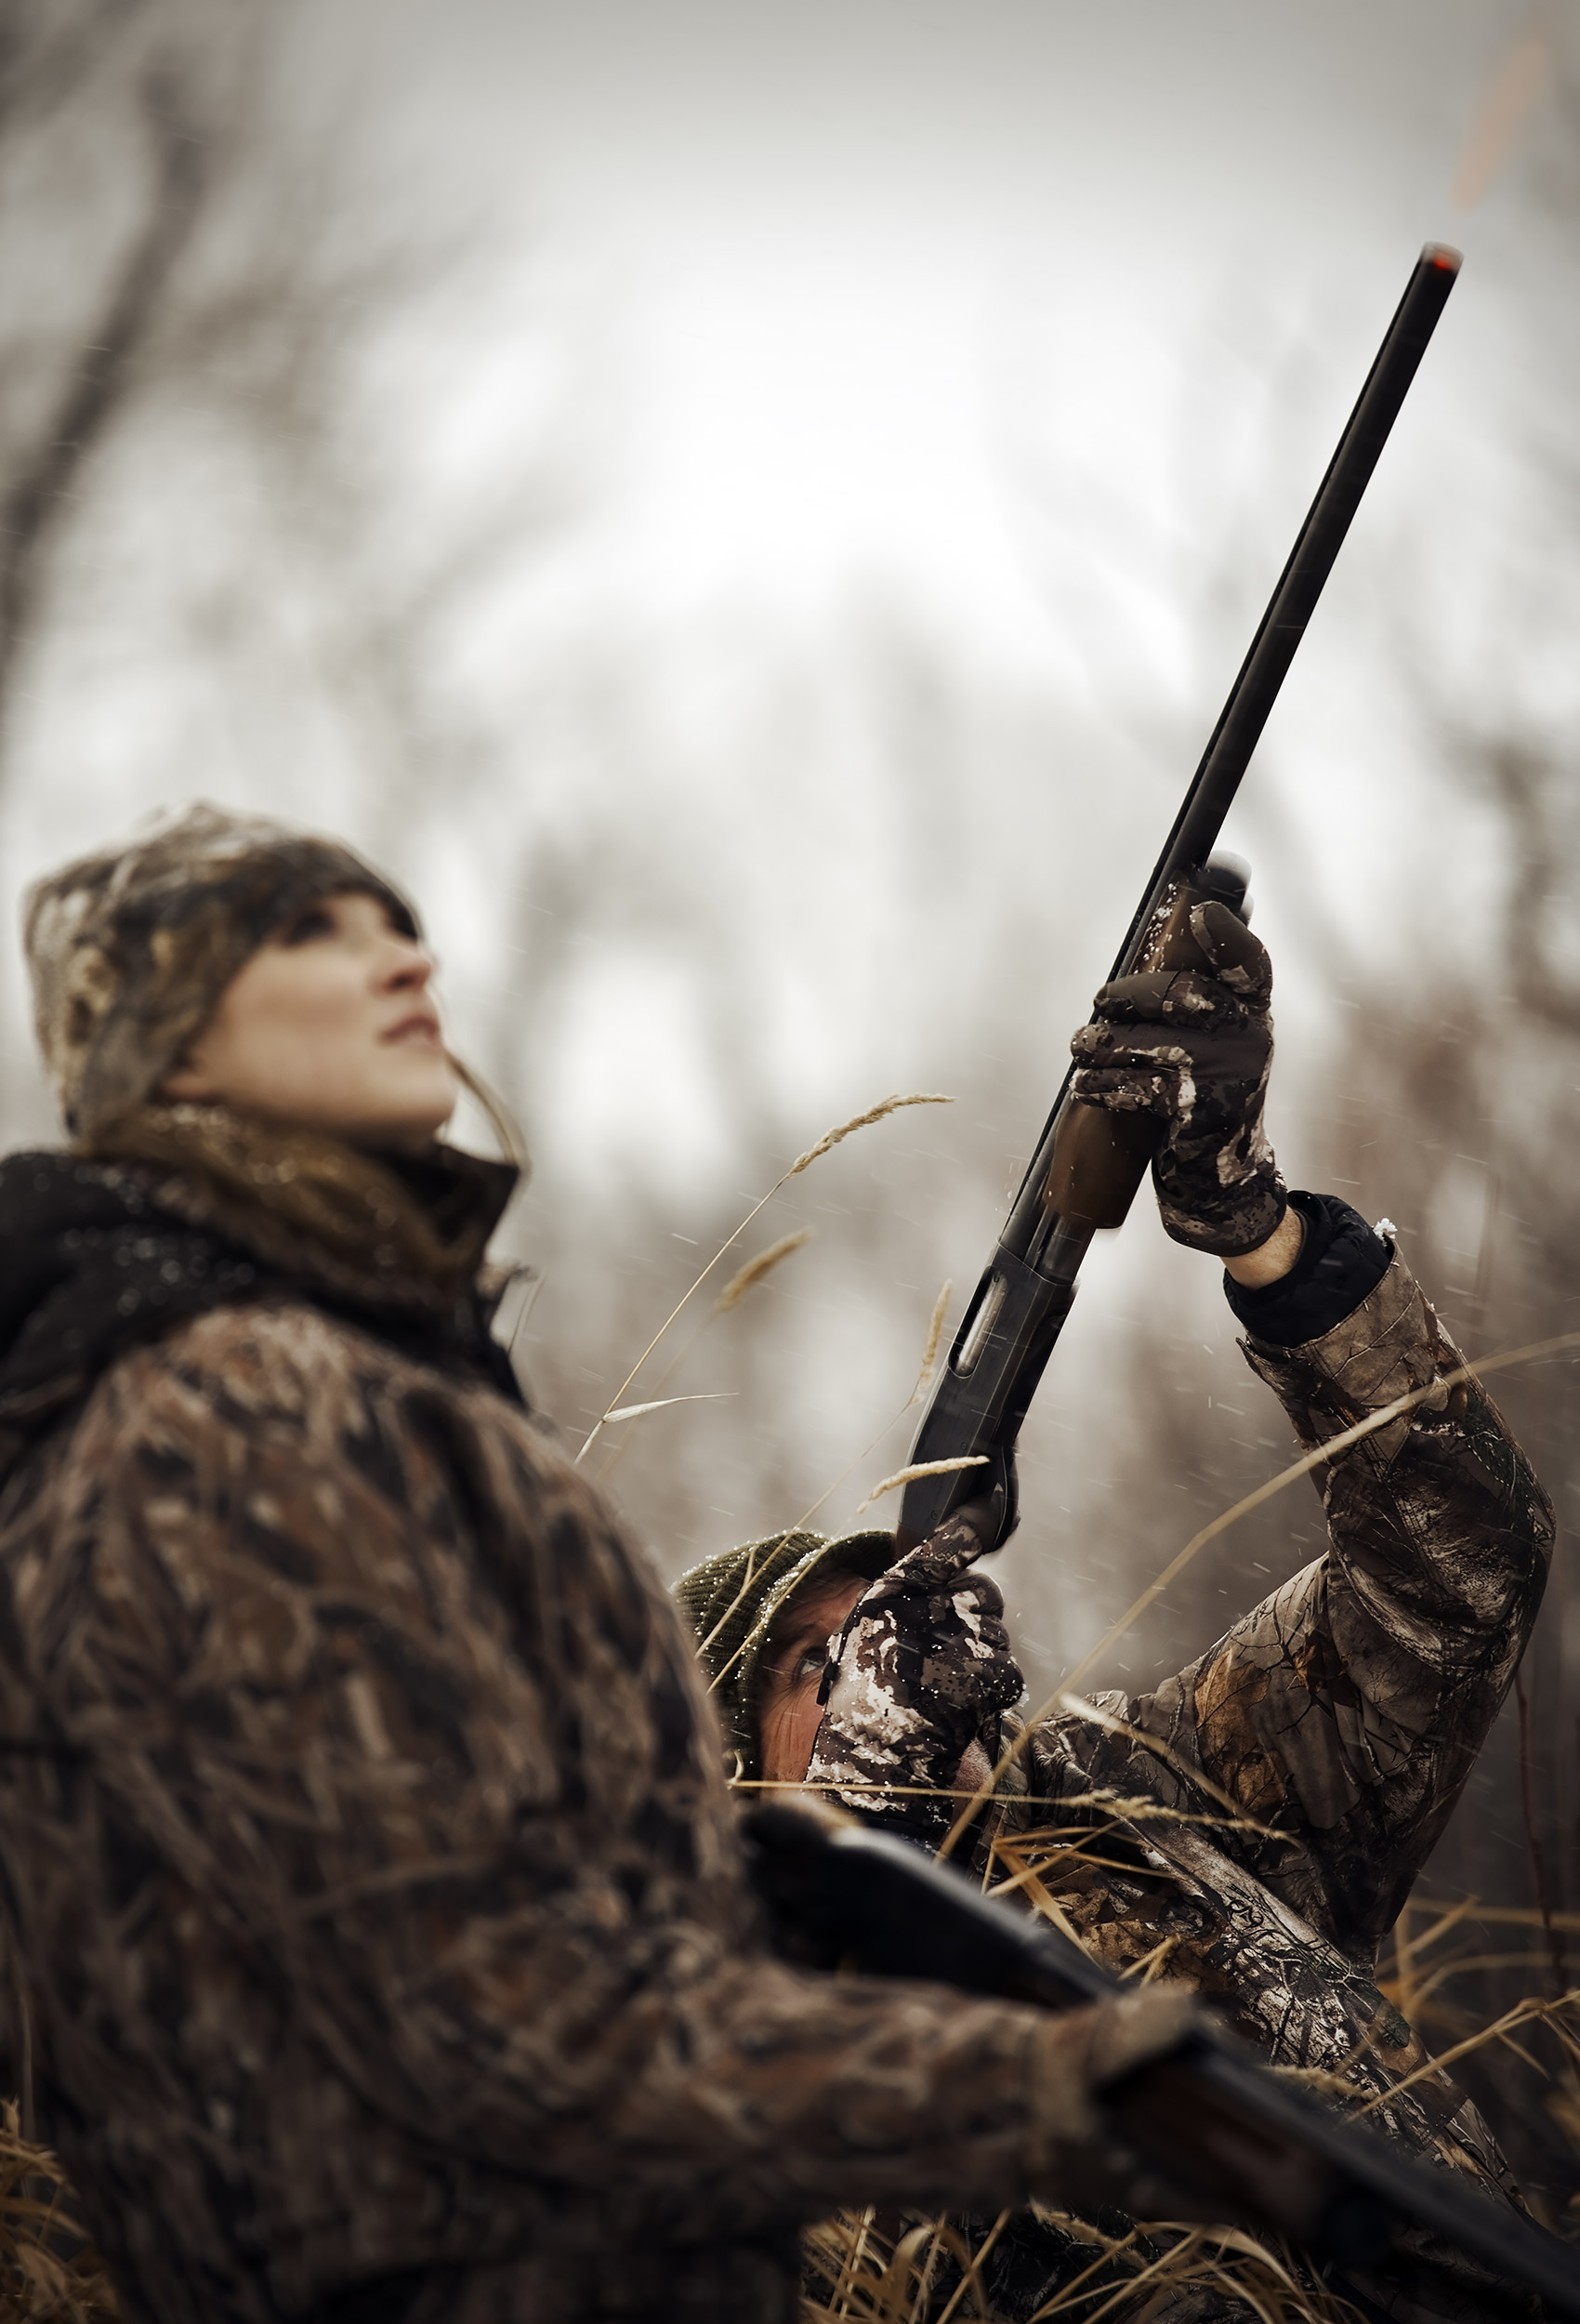 Father and daughter duck hunting together in a duck blind